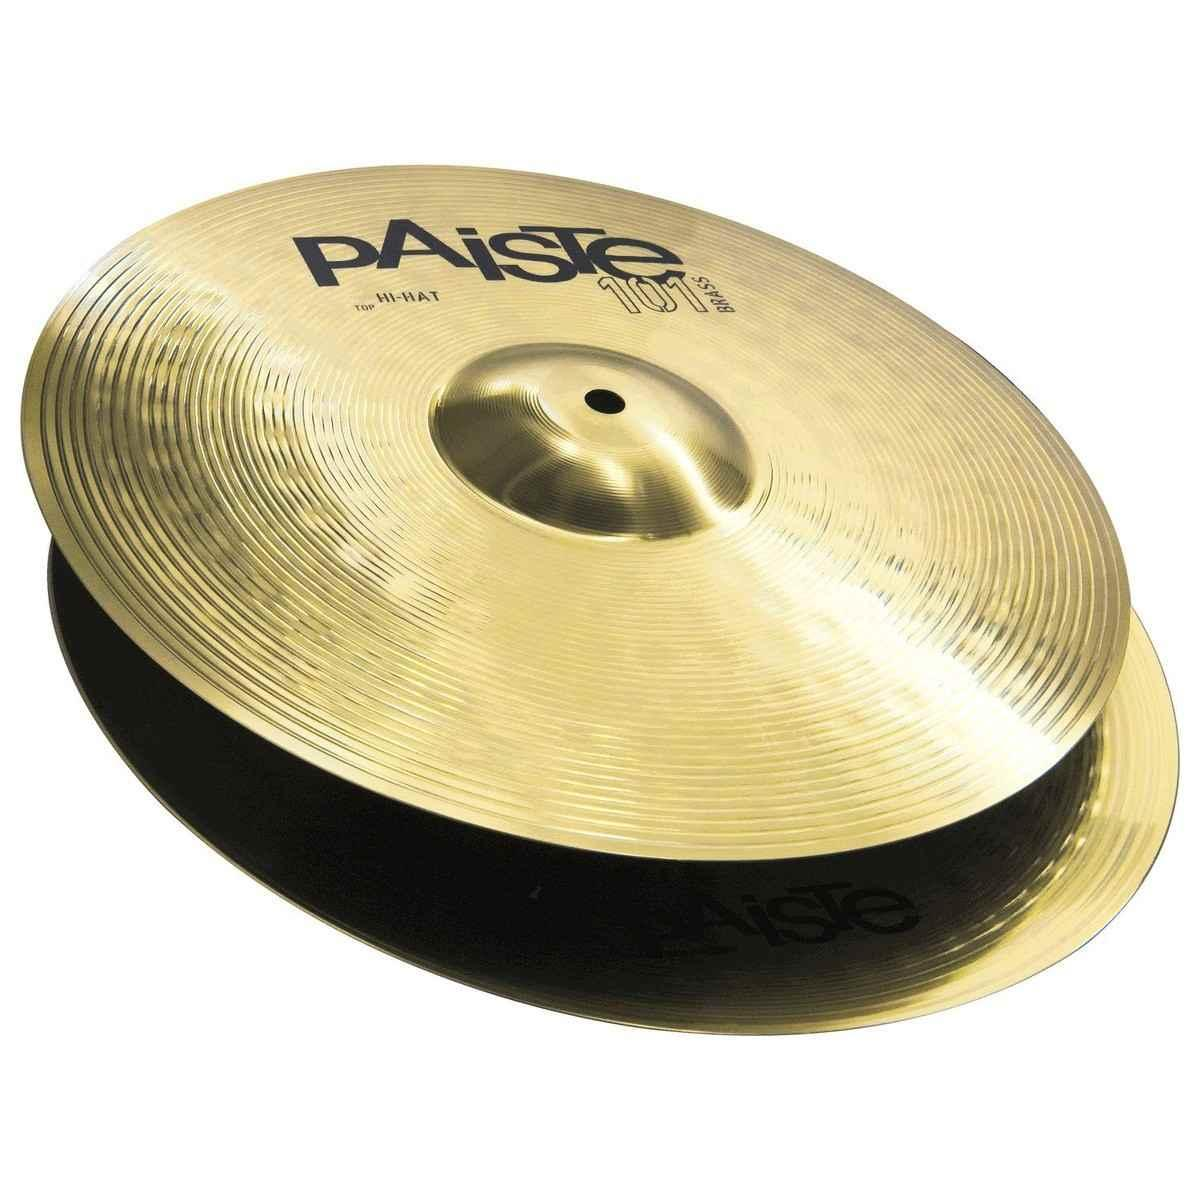 Paiste 101 special hit hat 14